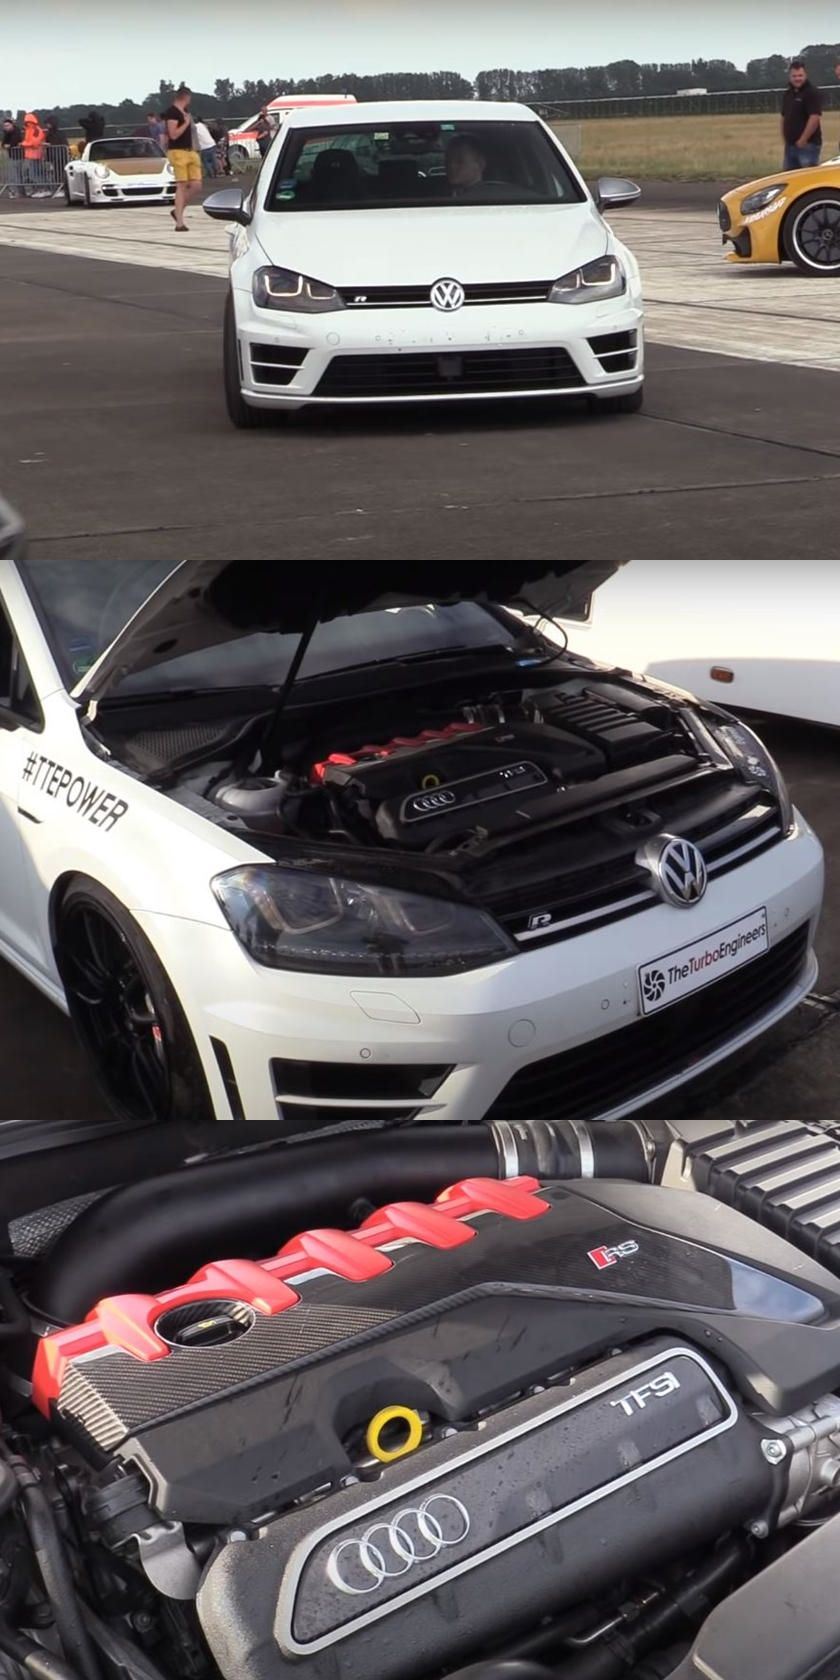 The Ultimate Vw Golf R Comes With Audi Rs3 Engine Swap Five Cylinders And A Custom Turbo Make For One Seriously Hot Hatch Audi Rs3 Vw Golf Audi